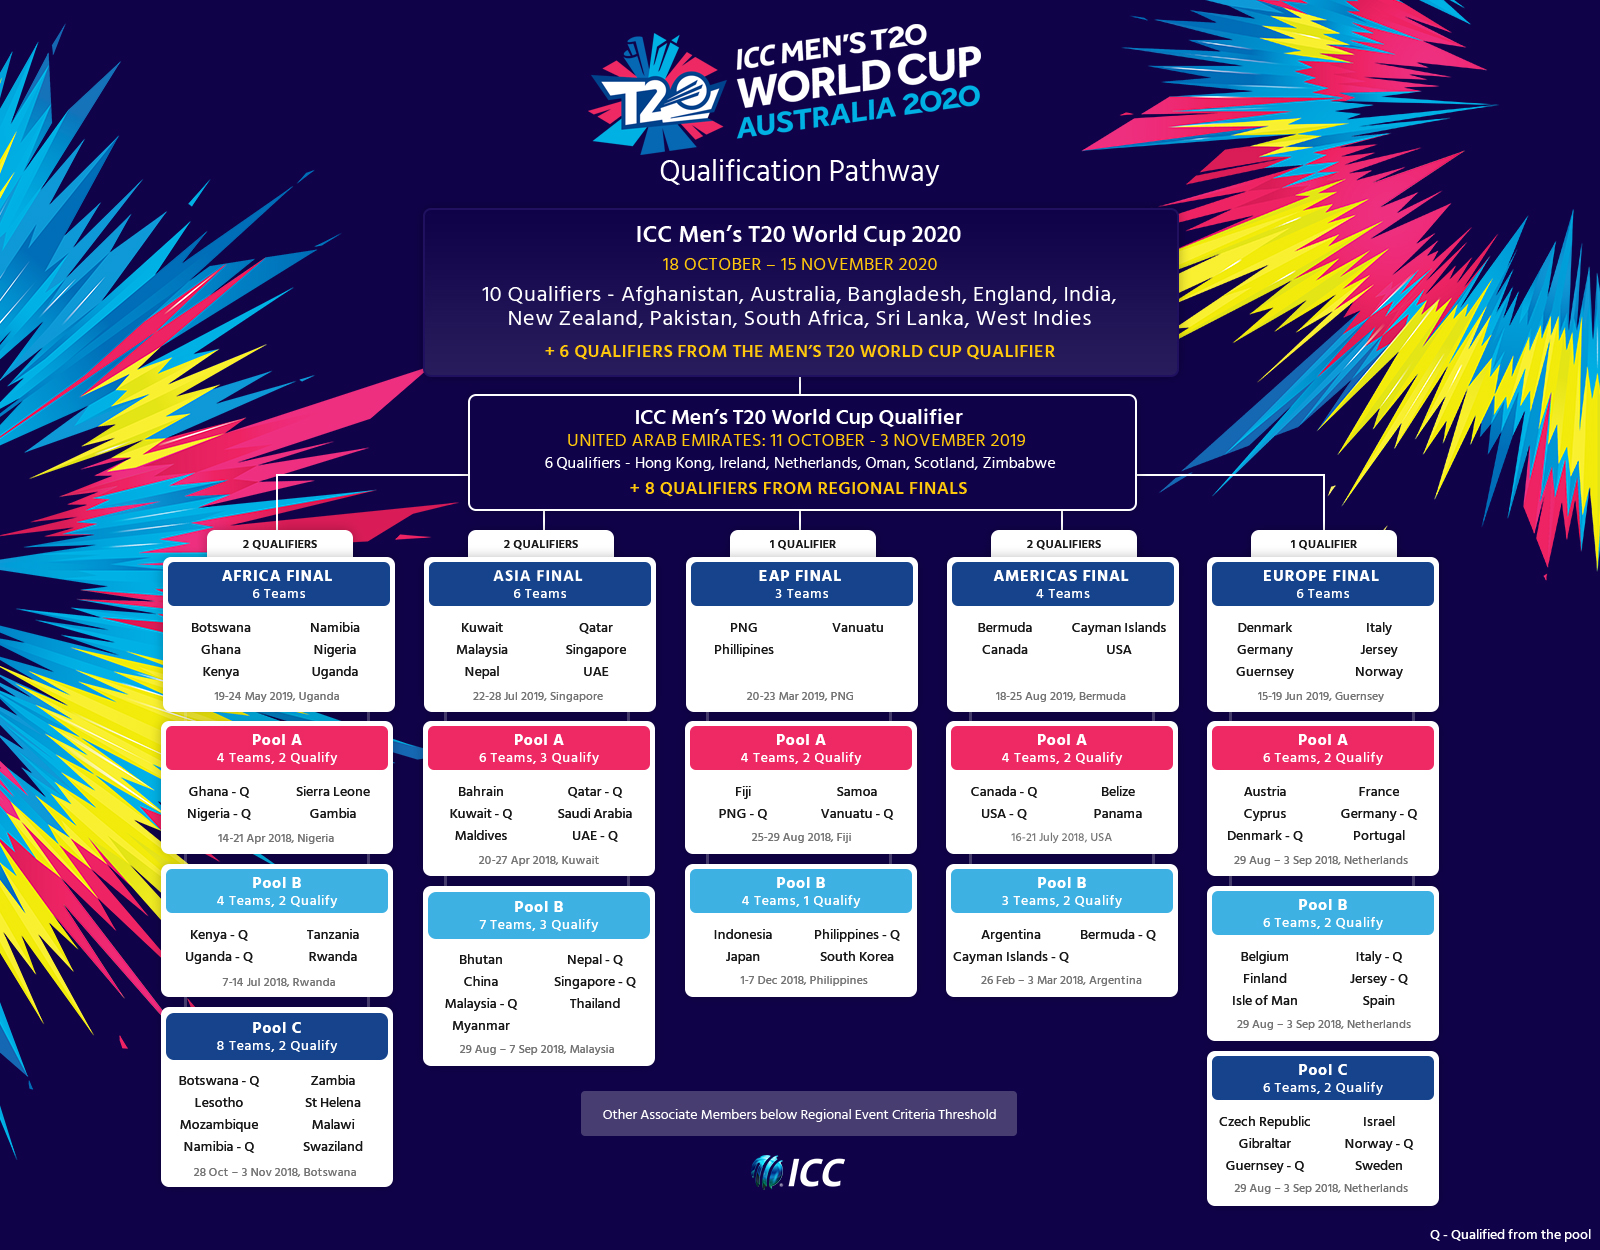 One Icc Men S T20 World Cup Qualifier Spot Up For Grabs In